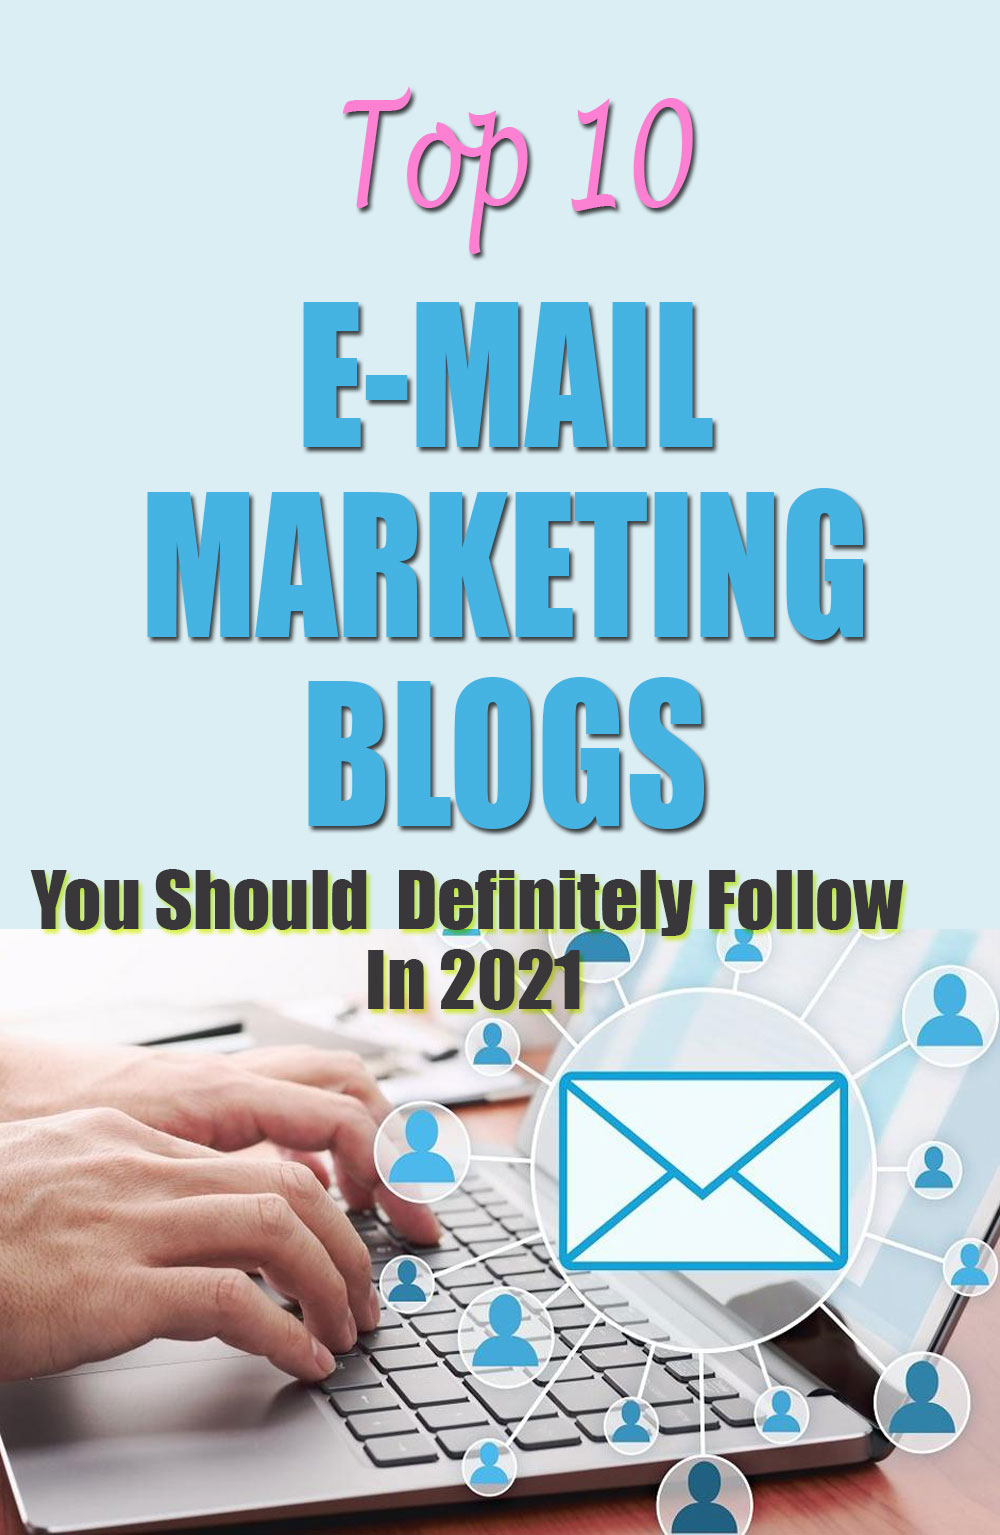 top 10 email marketing blogs